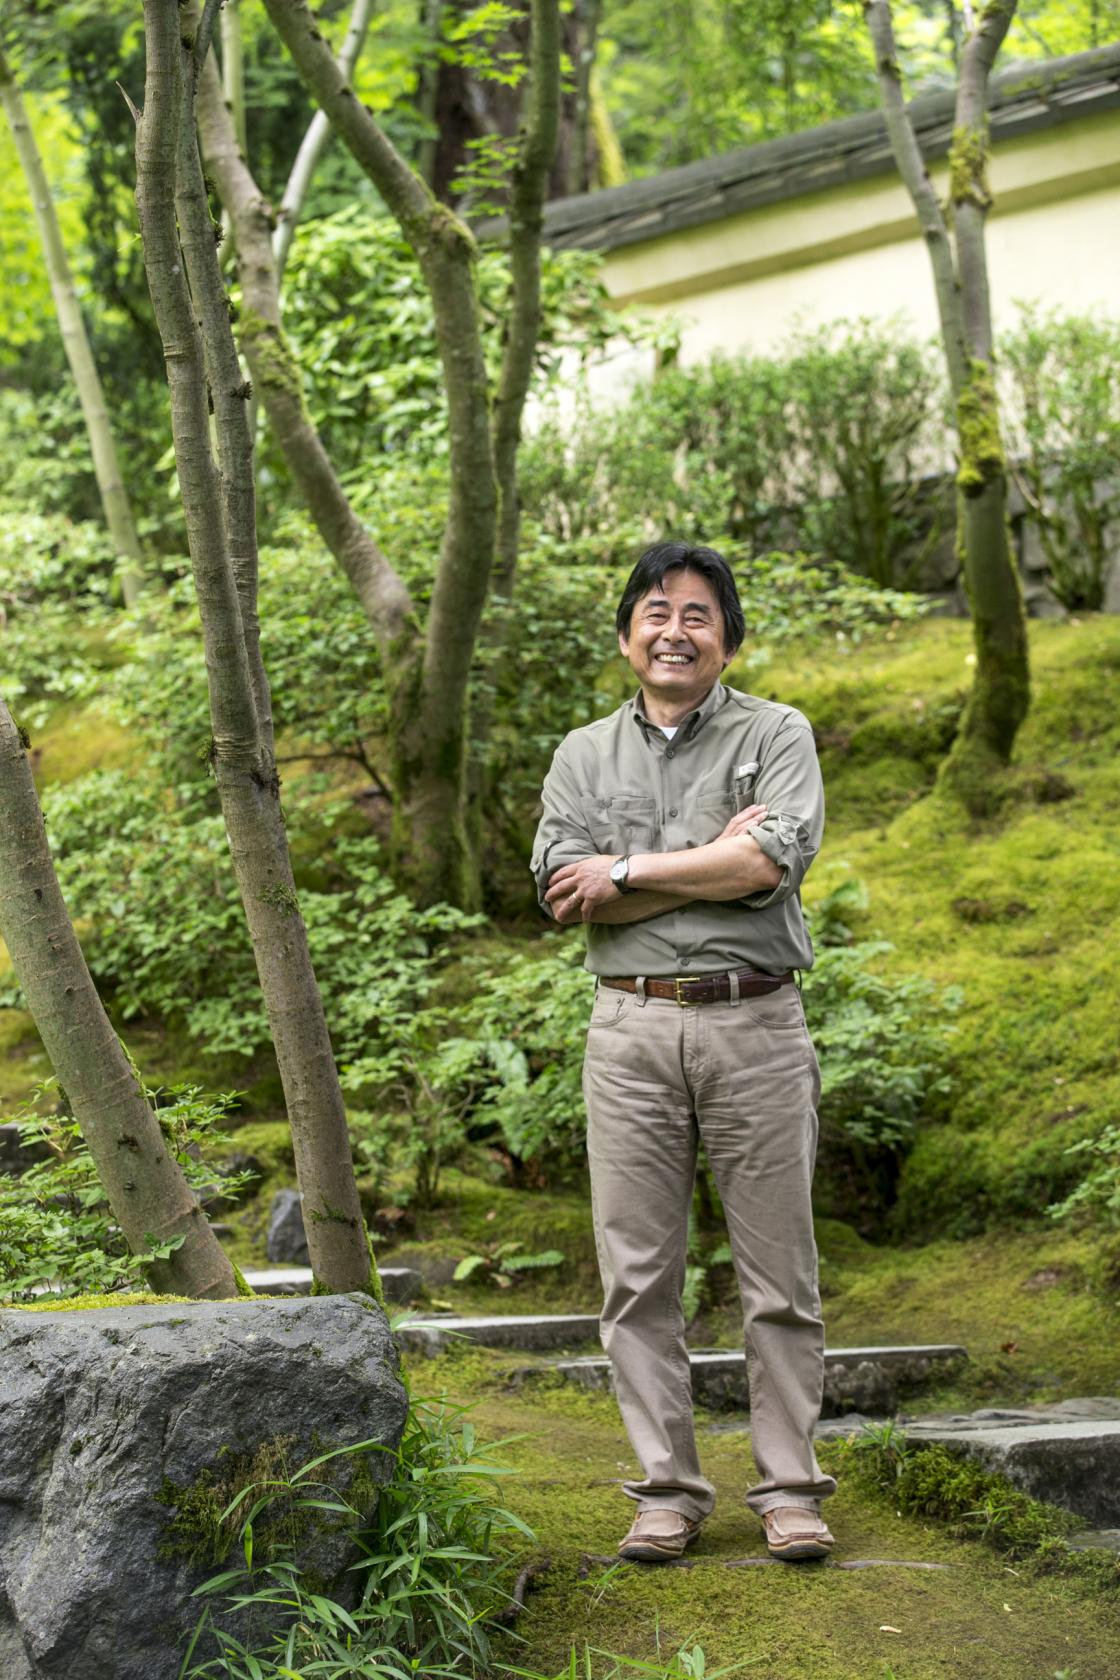 ... He Completed The Shoun Kei Japanese Garden At Sarah Duke Gardens At  Duke University (2015) And Currently Is Working On The Rolex Headquarters  In Dallas ...